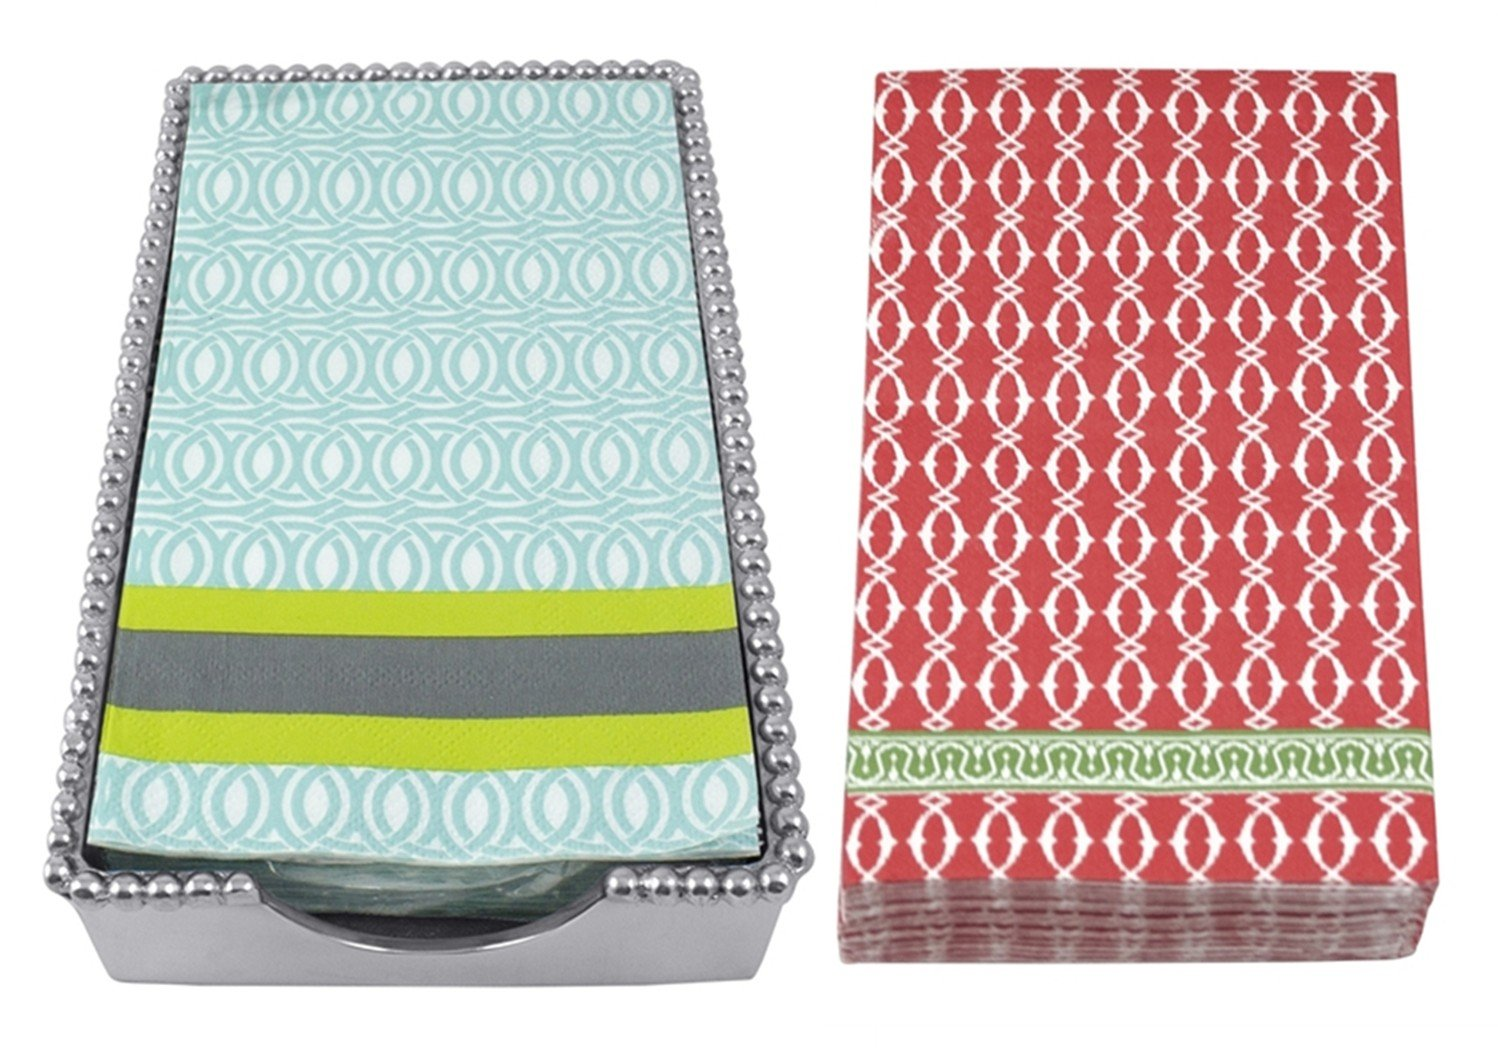 Mariposa Beaded Guest Towel Holder with 2 sets of Napkins - Spring & Holiday by Mariposa